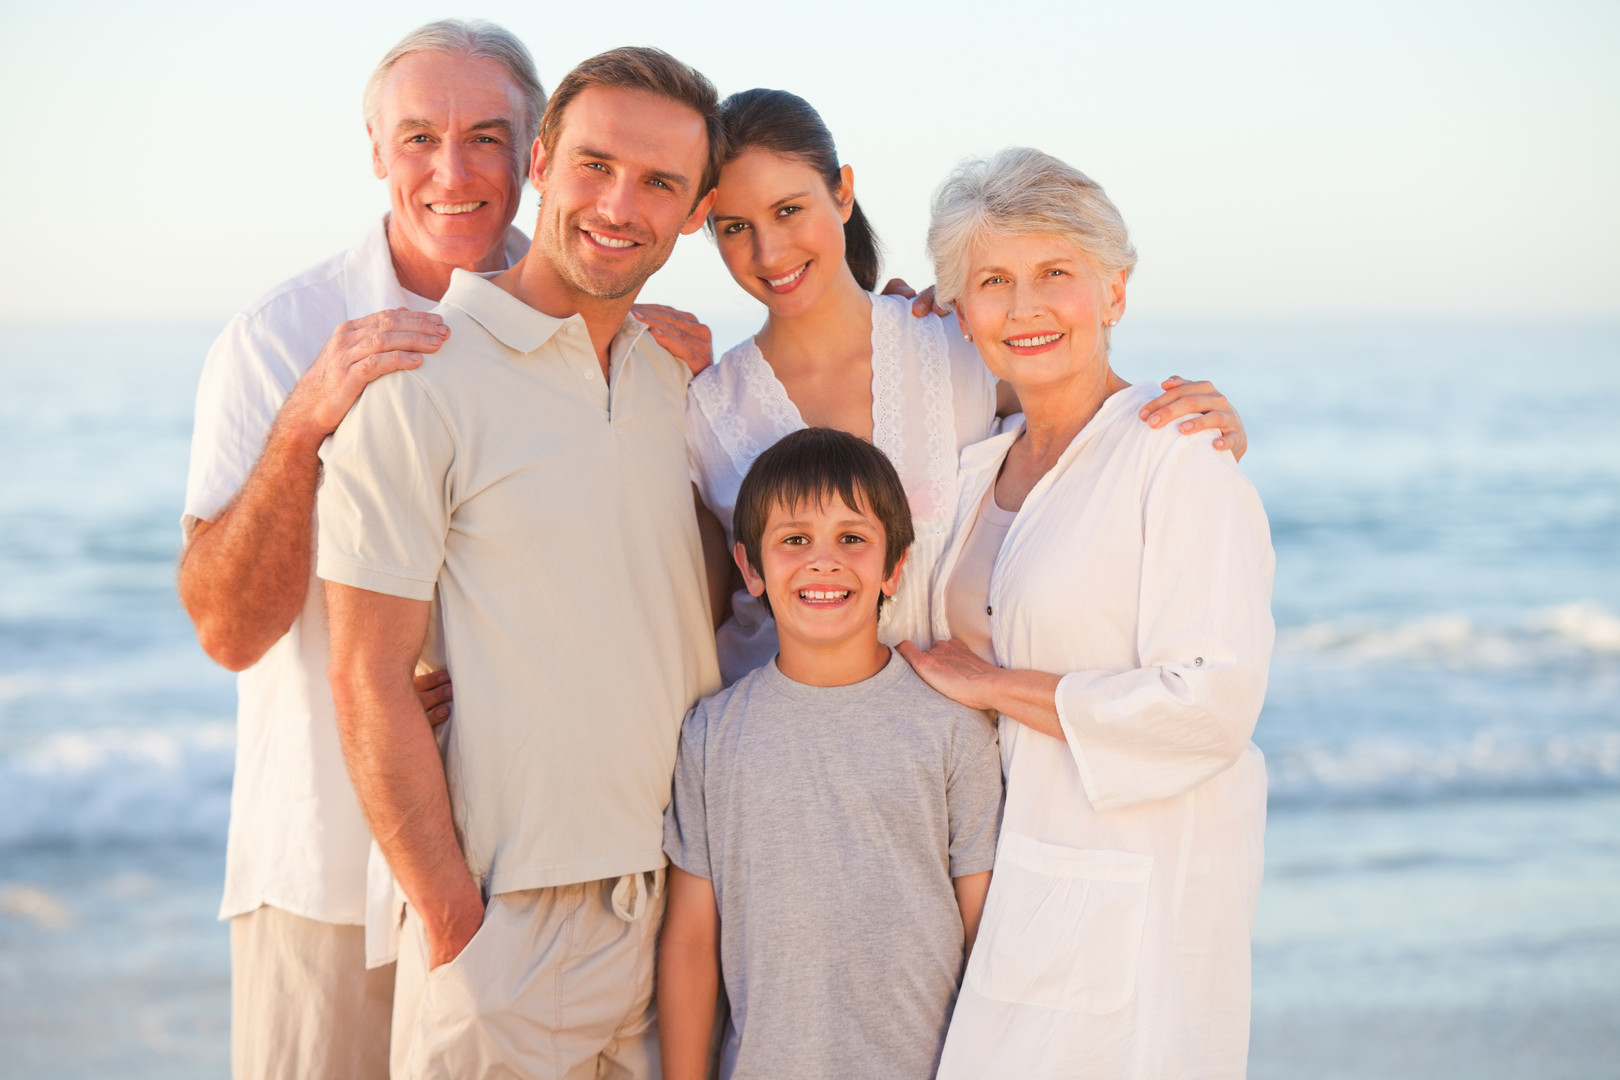 portrait-of-smiling-family-at-the-beach.